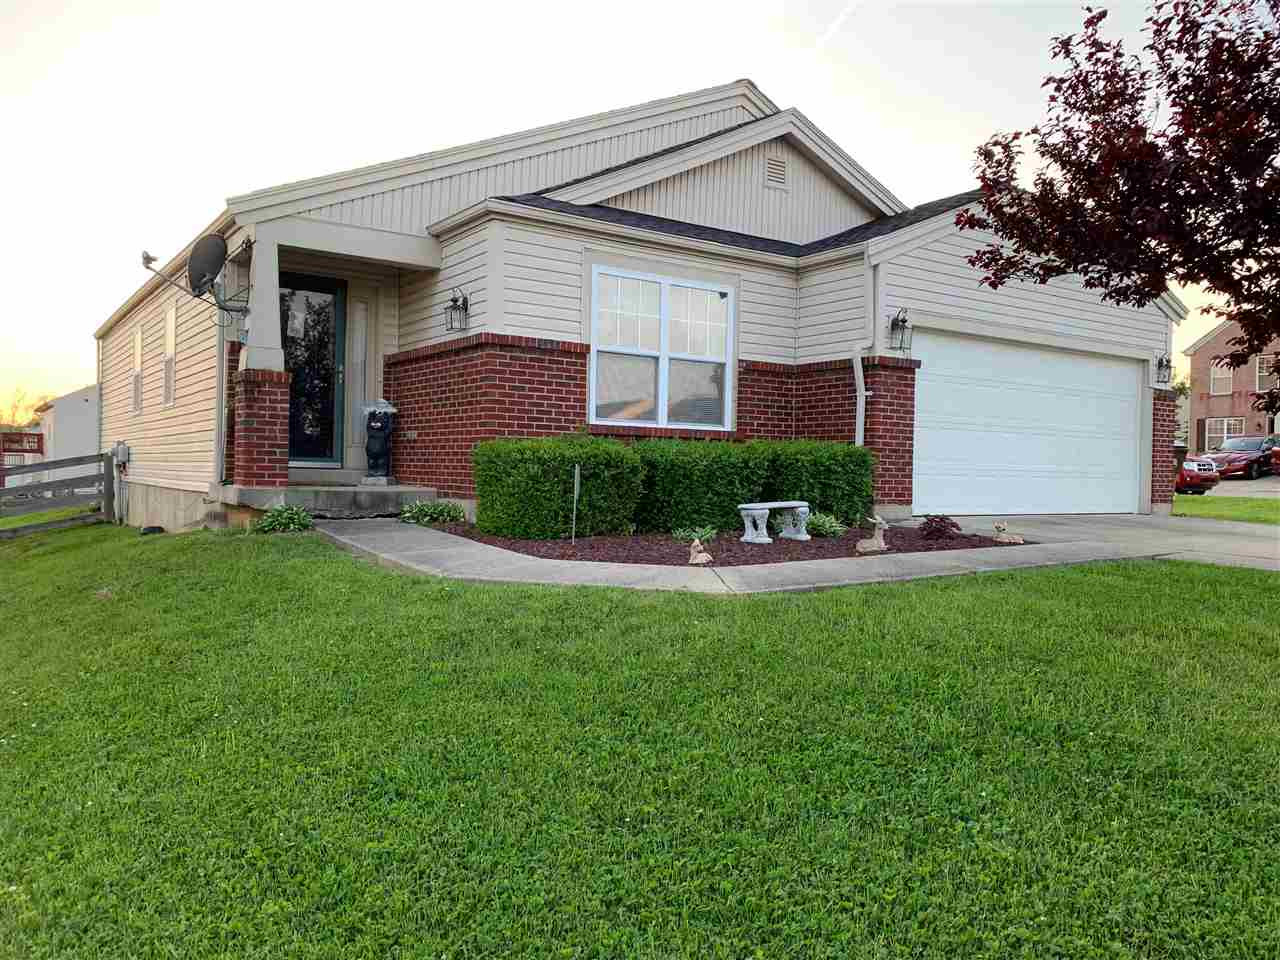 Photo 1 for 10700 Chinkapin Cir Independence, KY 41051